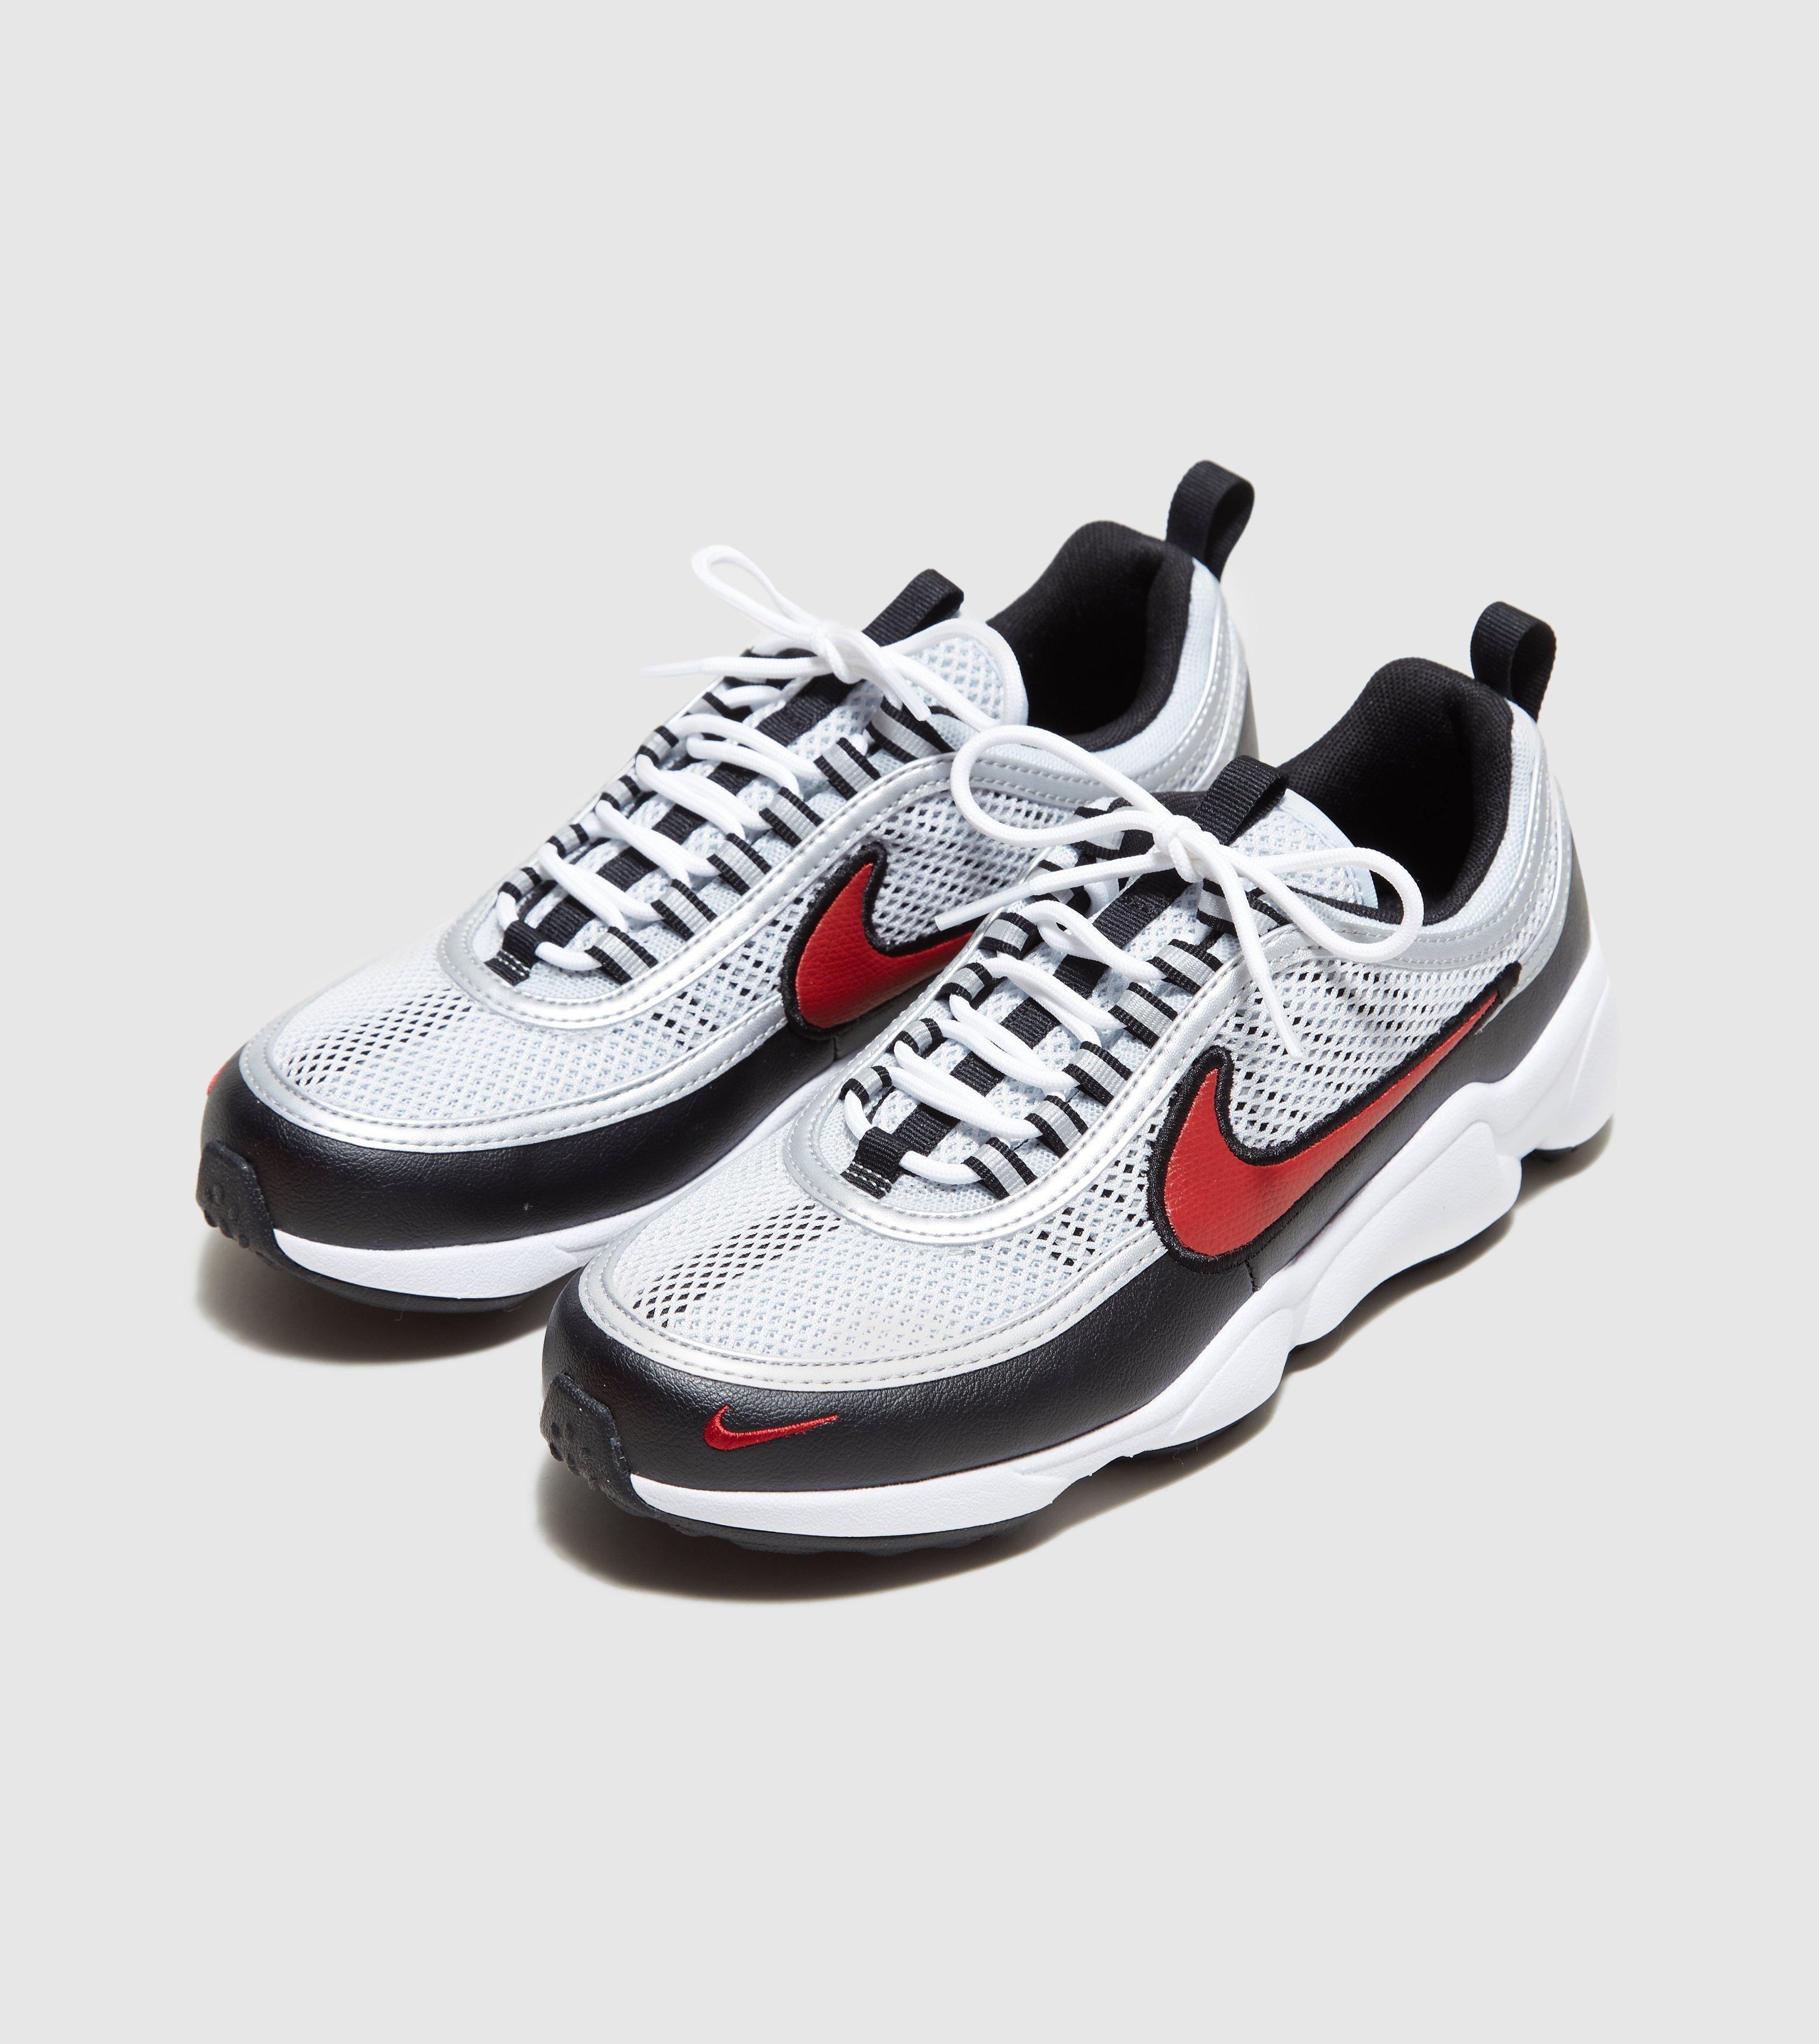 215a8abffd258 Lyst - Nike Air Zoom Spiridon Ultra Women s in Red